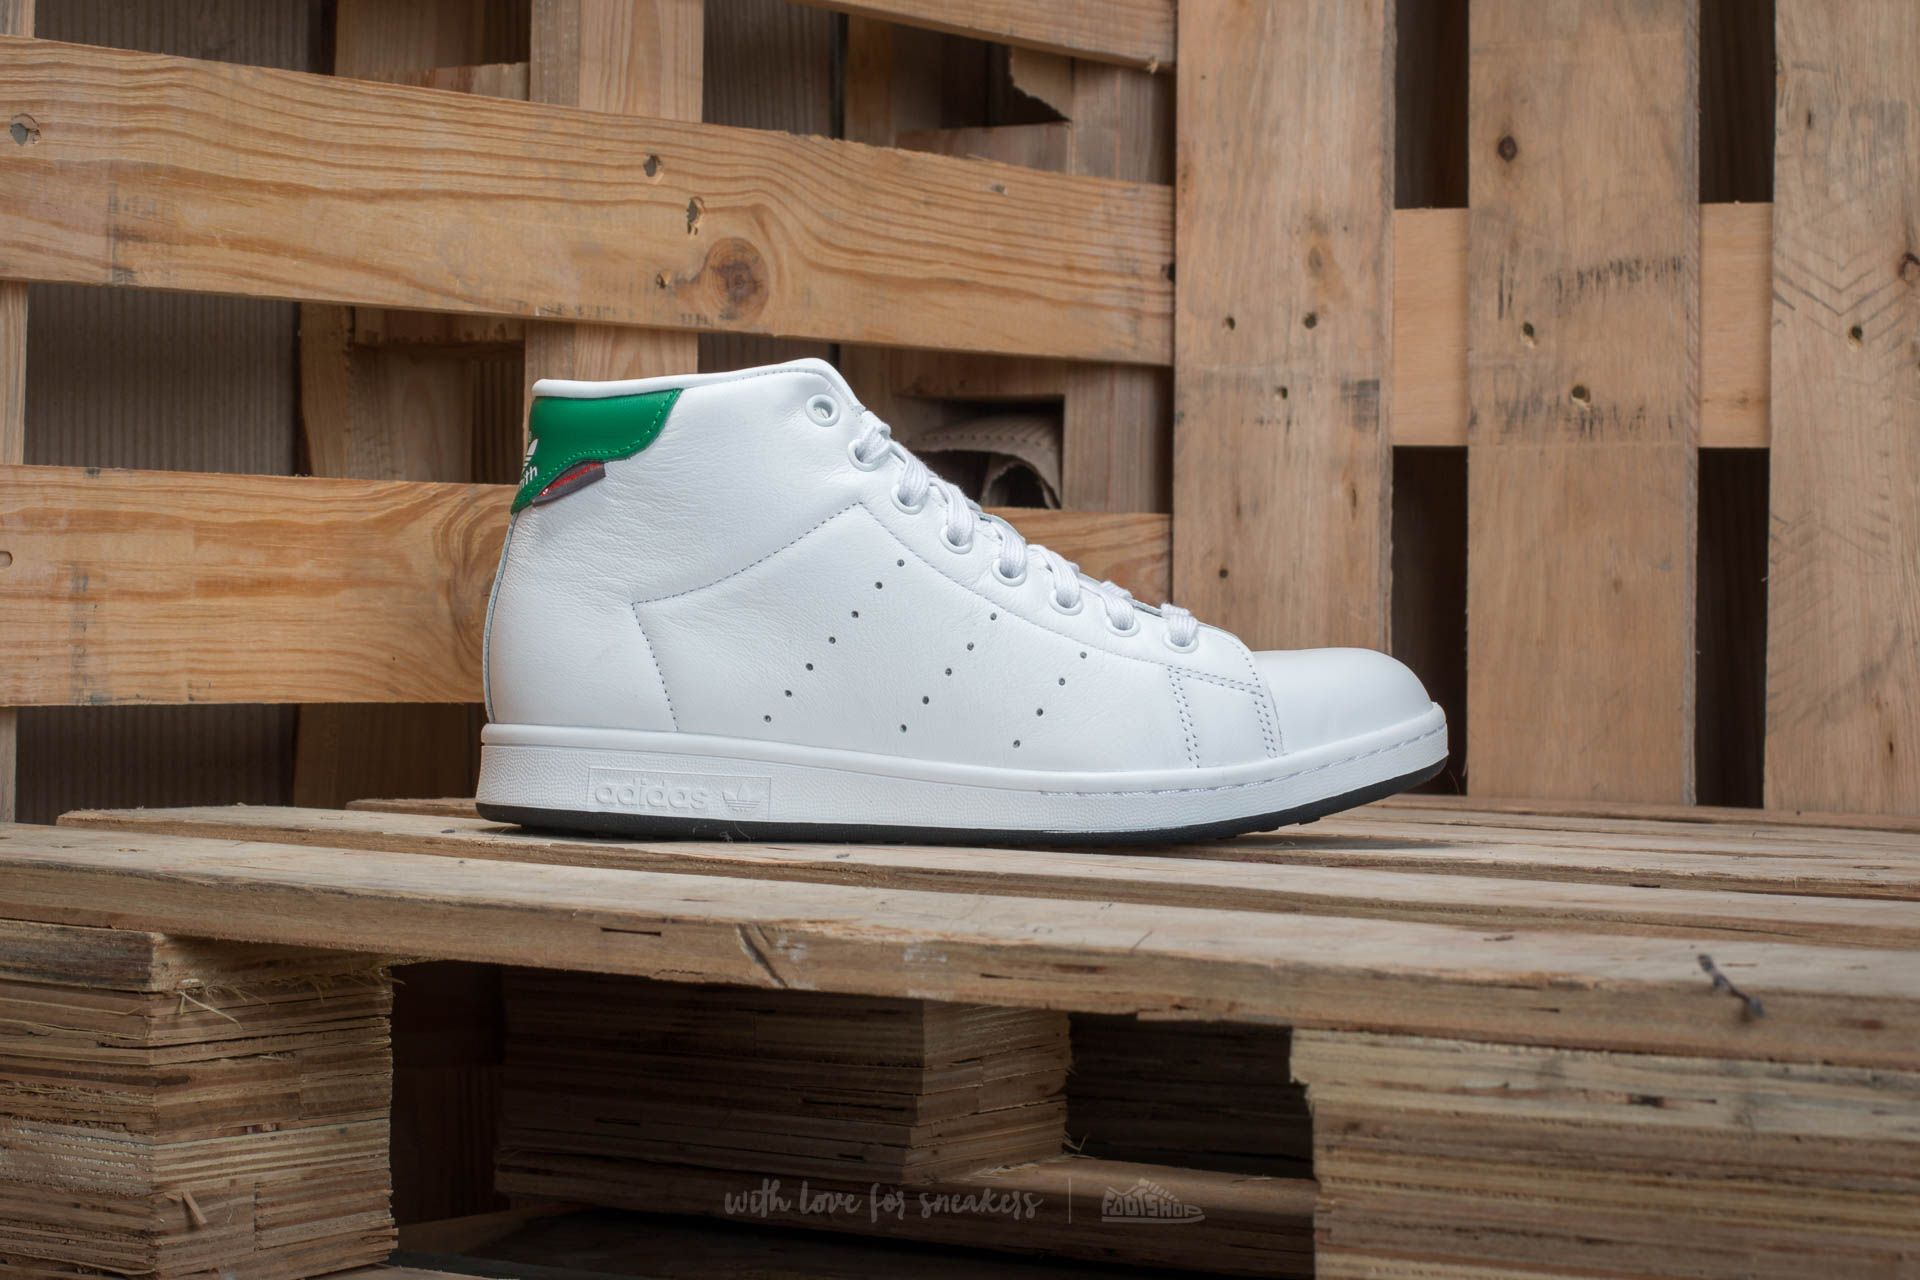 adidas Stan Smith Winter Ftw White  Ftw White  Green at a great price 73 e69269f0a